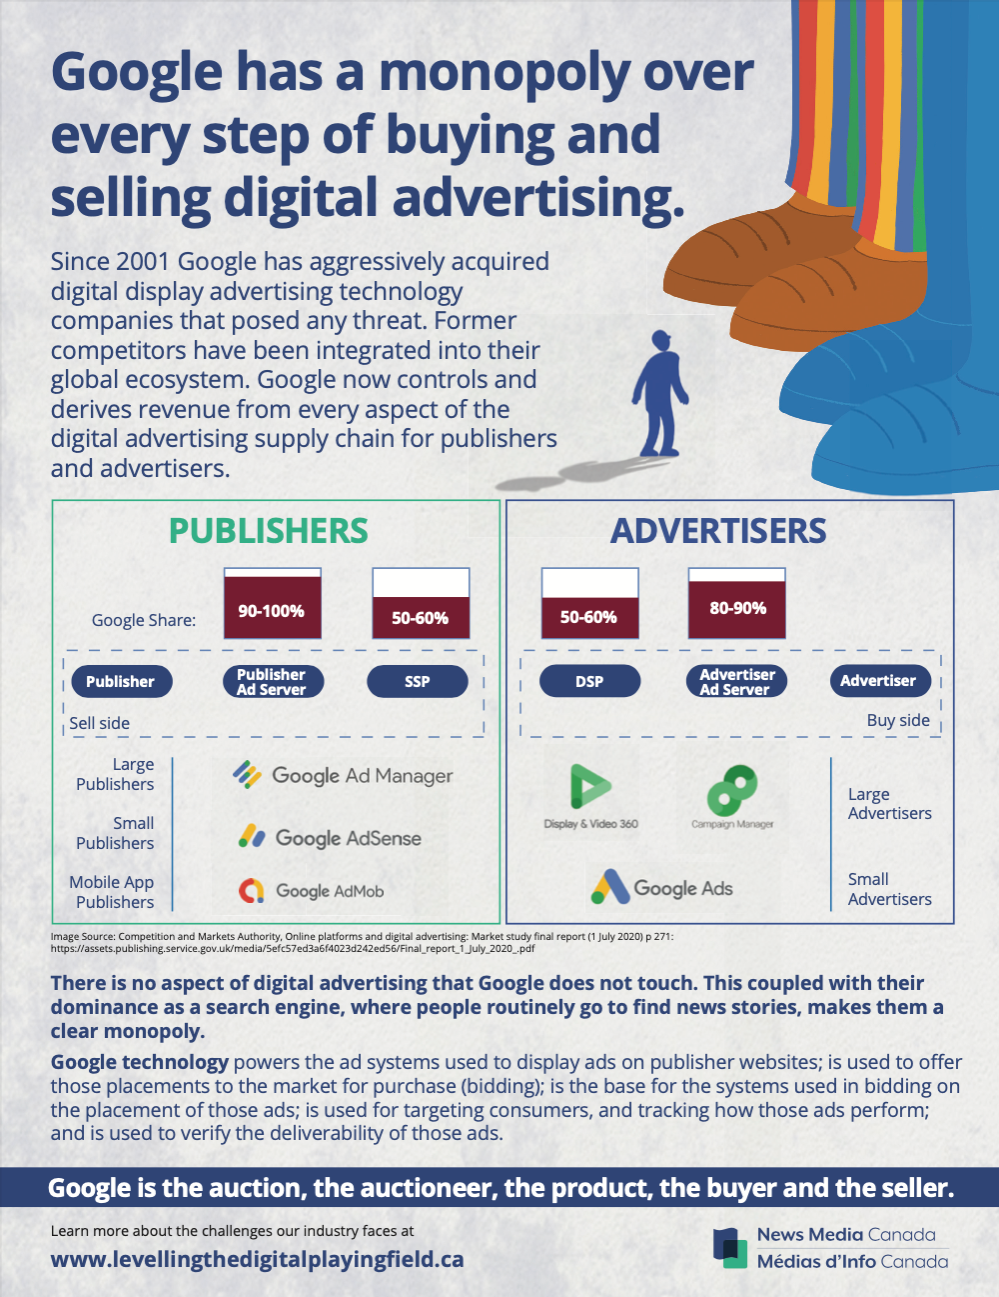 Levelling the Digital Playing Field - Fact Sheet